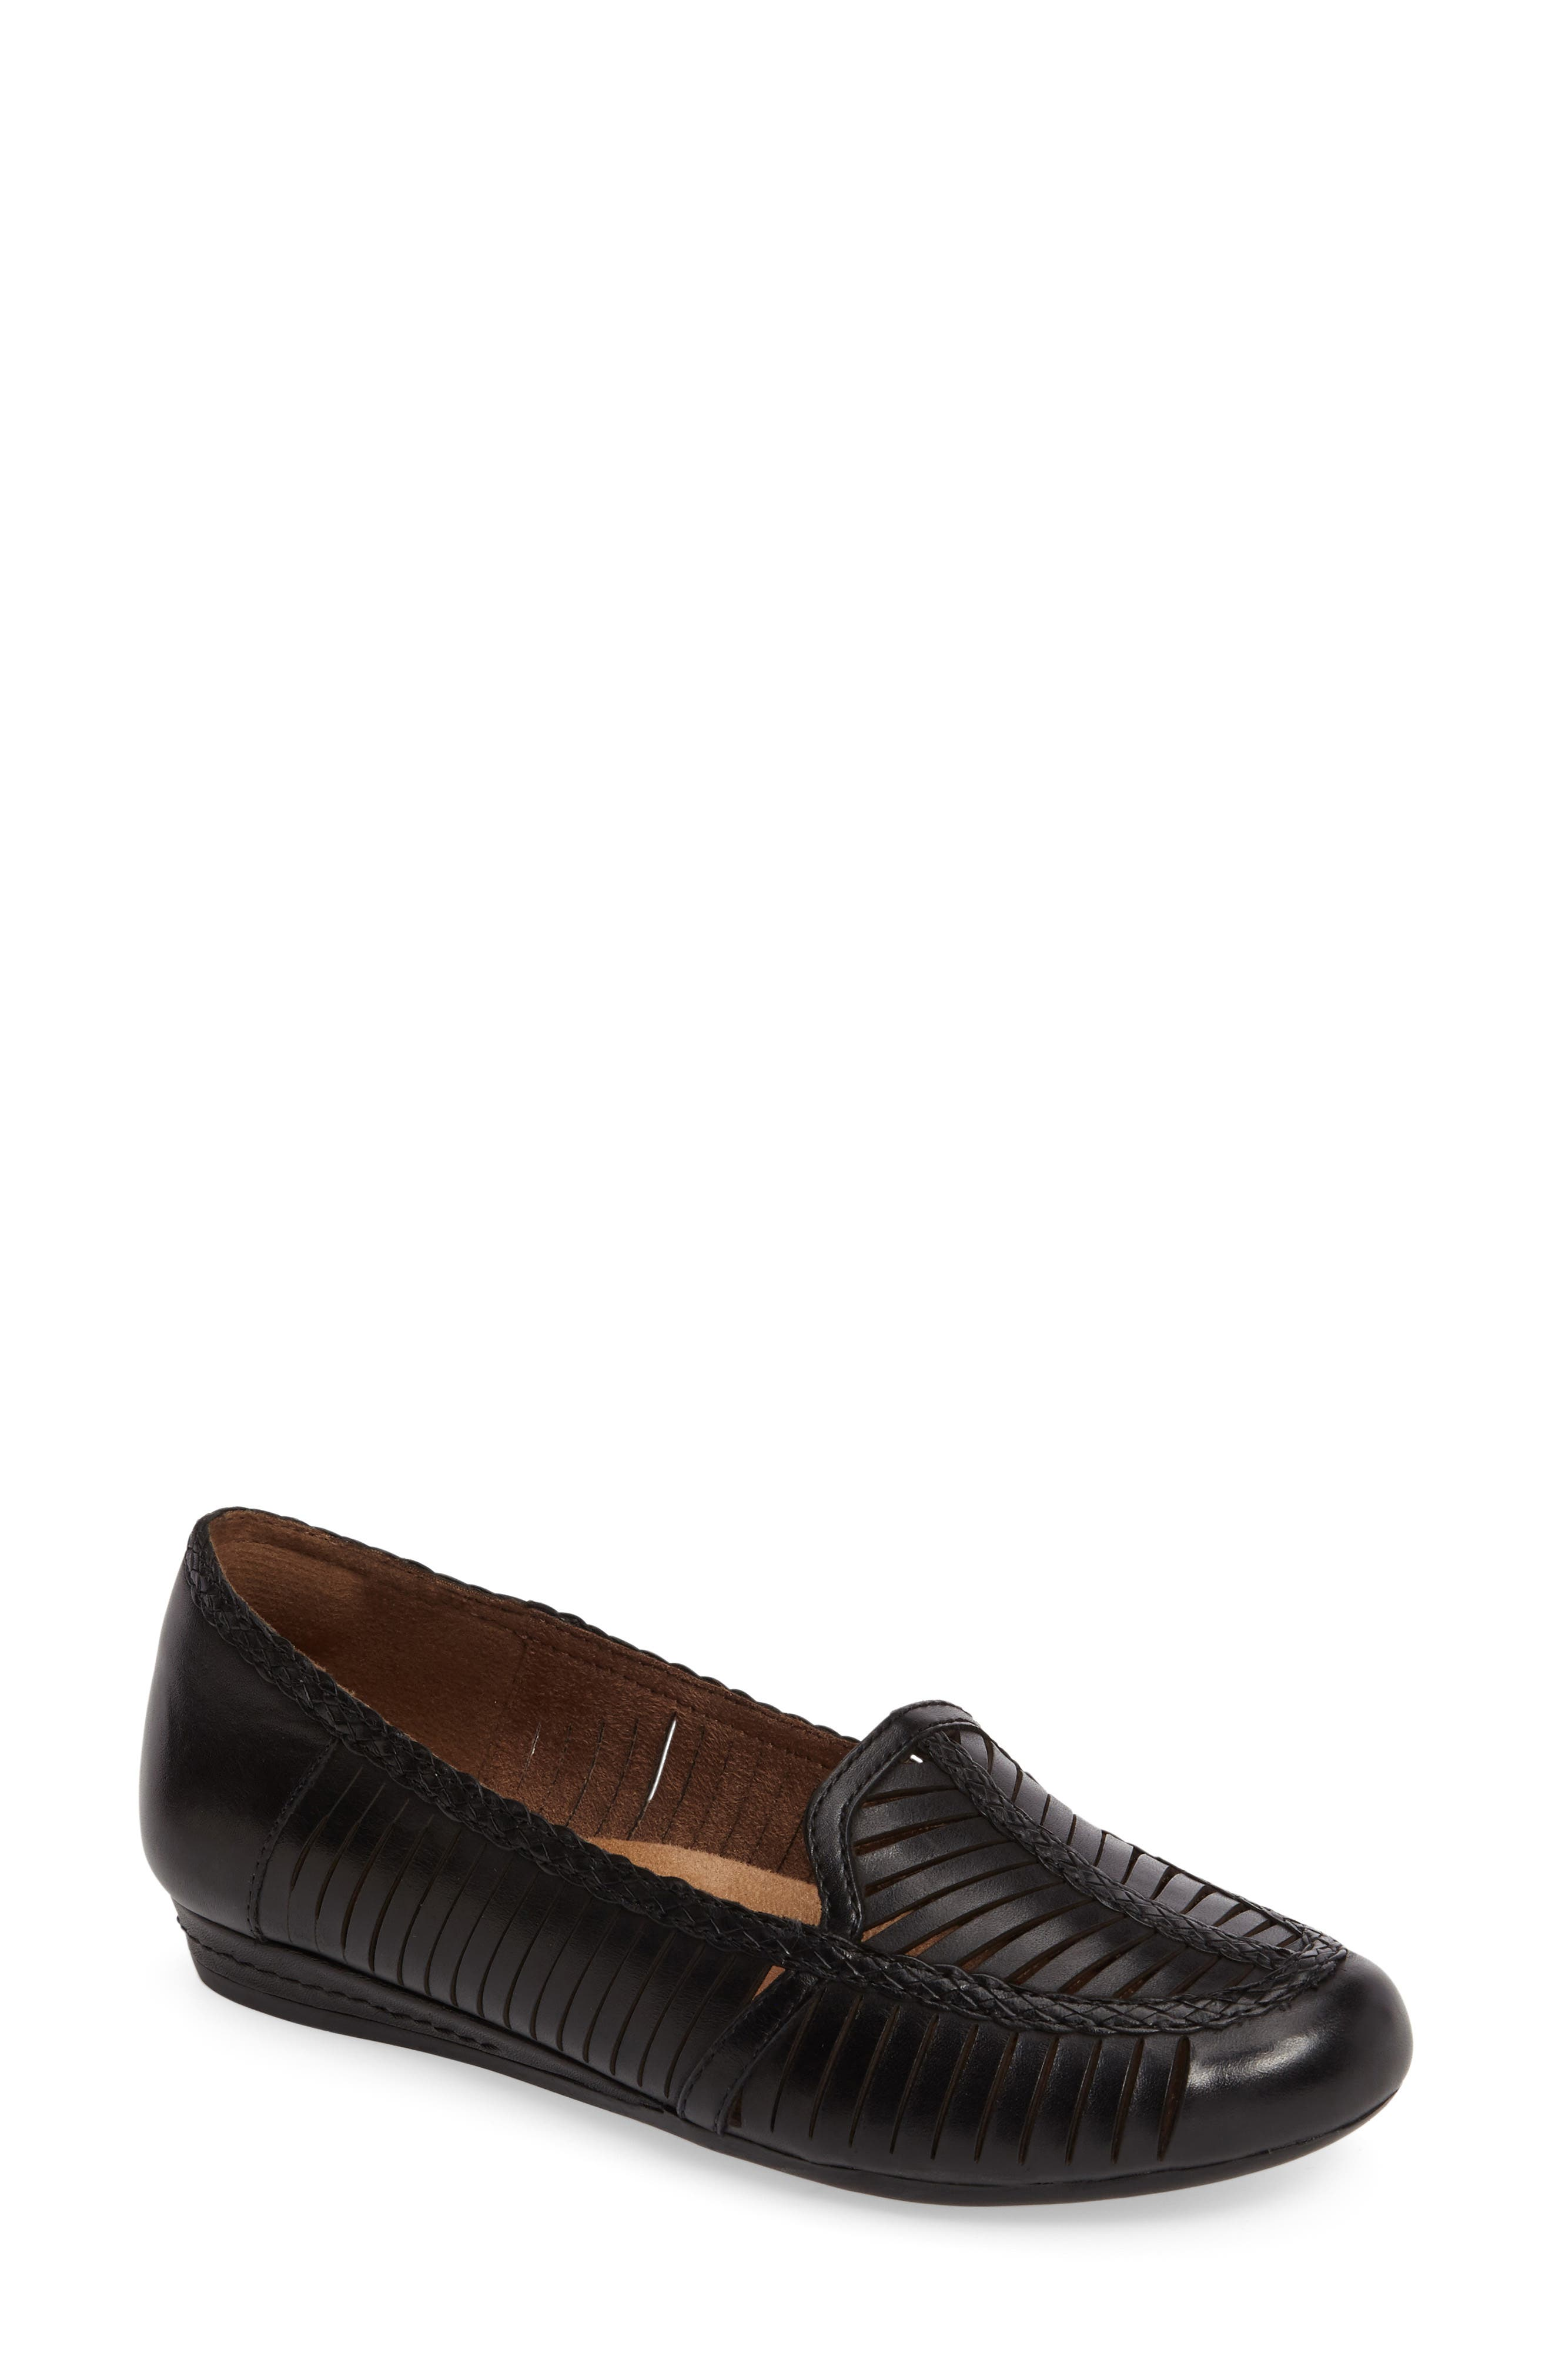 Galway Loafer,                         Main,                         color, 001